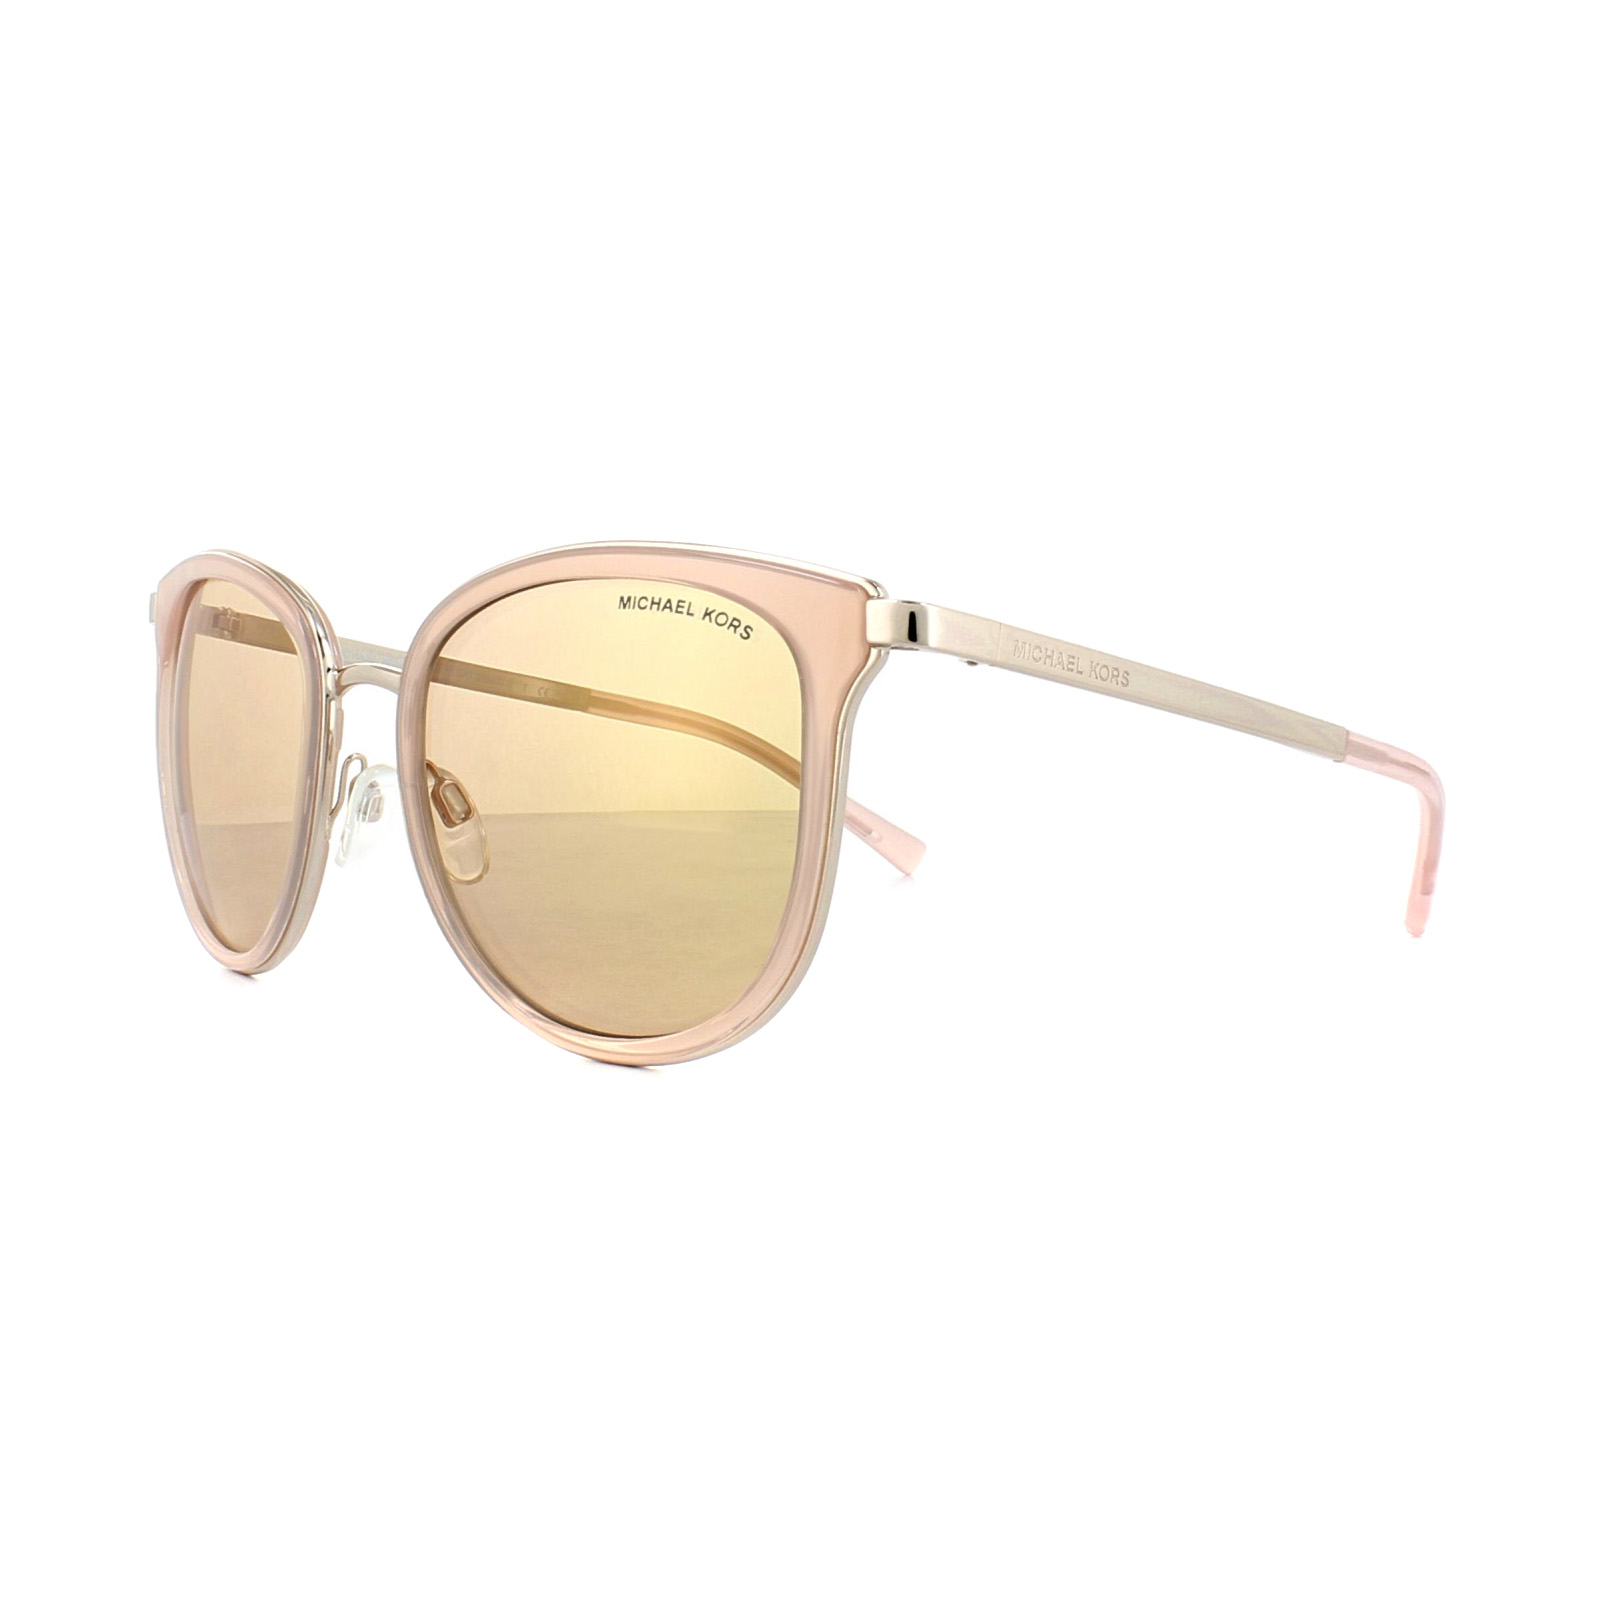 cccccafc02 Details about Michael Kors Sunglasses Adrianna 1 1010 1103R1 Pink Rose Gold  Rose Gold Miirror